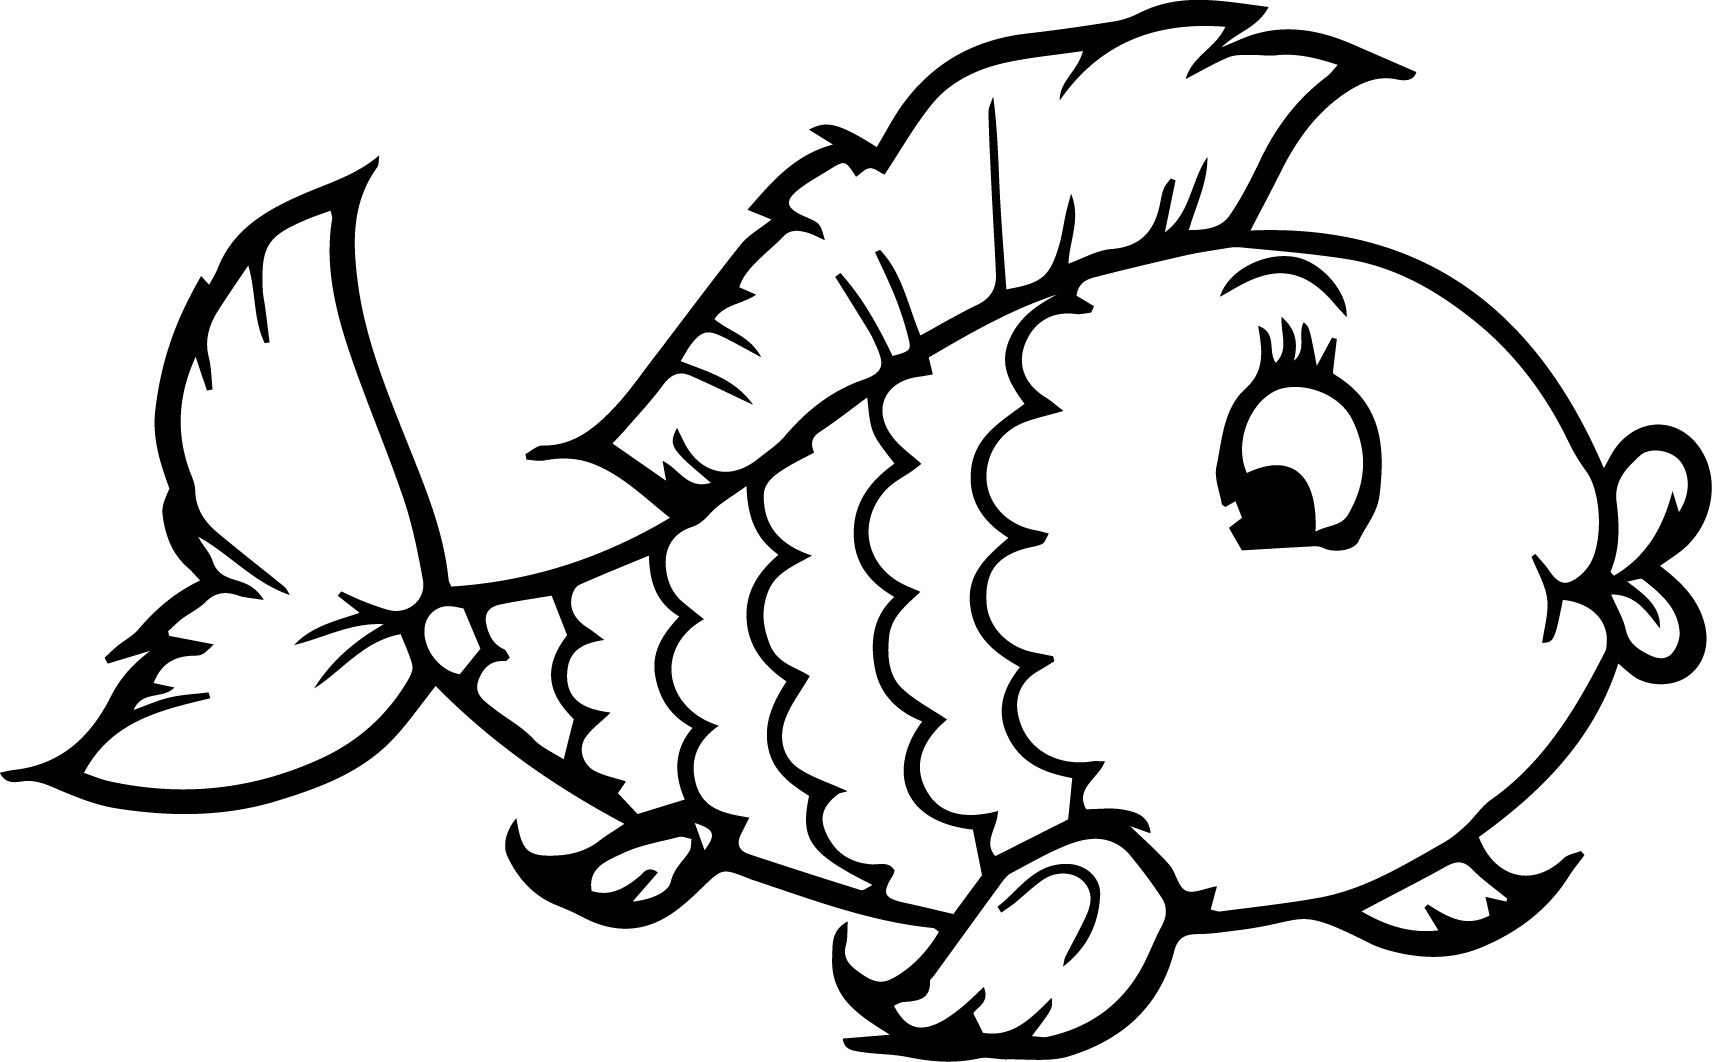 Big fish clipart color image library download Printable Fishing | Free download best Printable Fishing on ... image library download